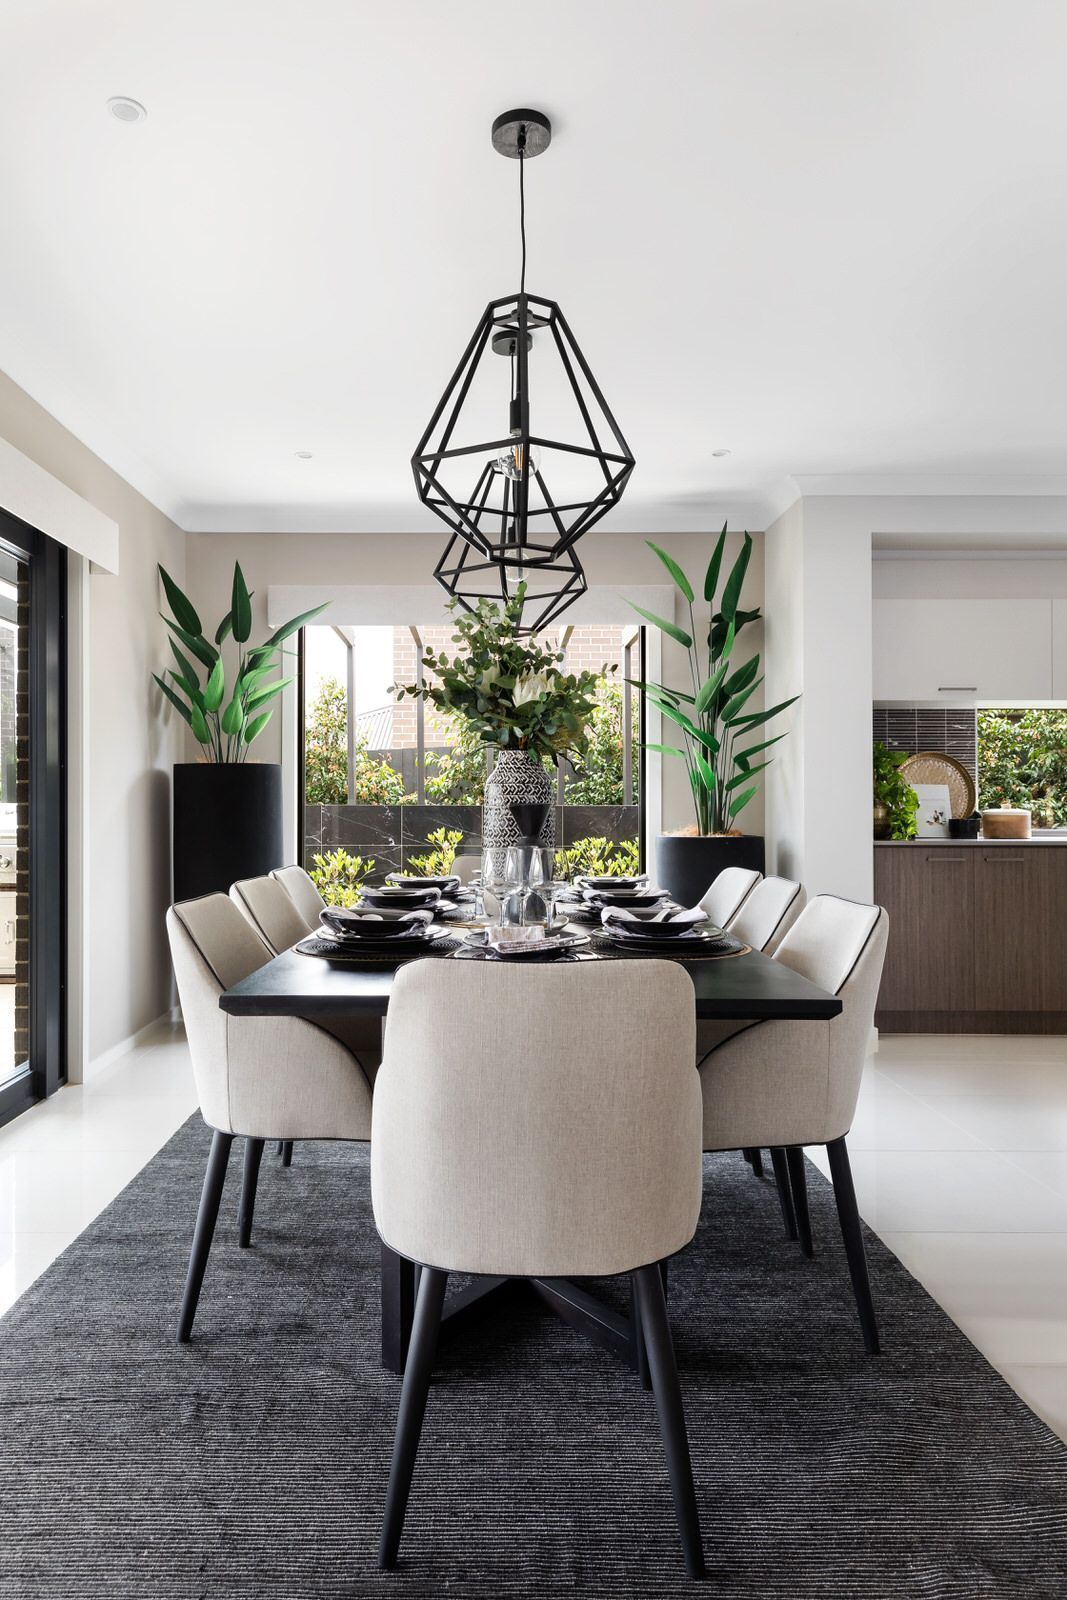 Fall In Love With The Most Dazzling Centerpiece Ideas For Your Dining Room Decor Diningroomlighting Diningroomdecor Di Tasarim Oda Ic Tasarim Ev Duzenleme